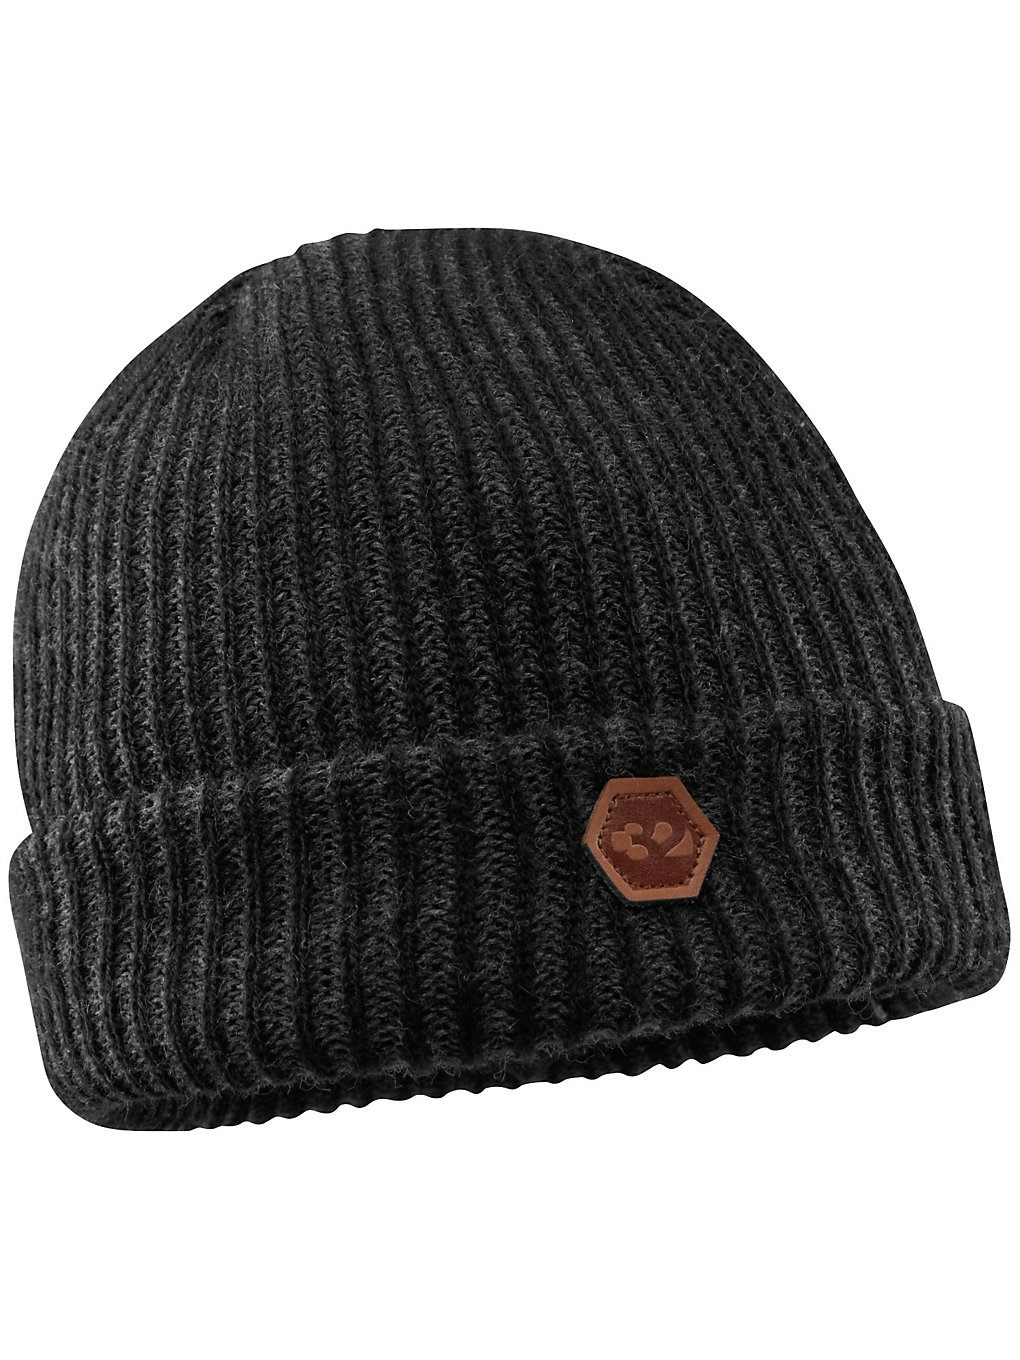 Image of 32 Furnace Beanie